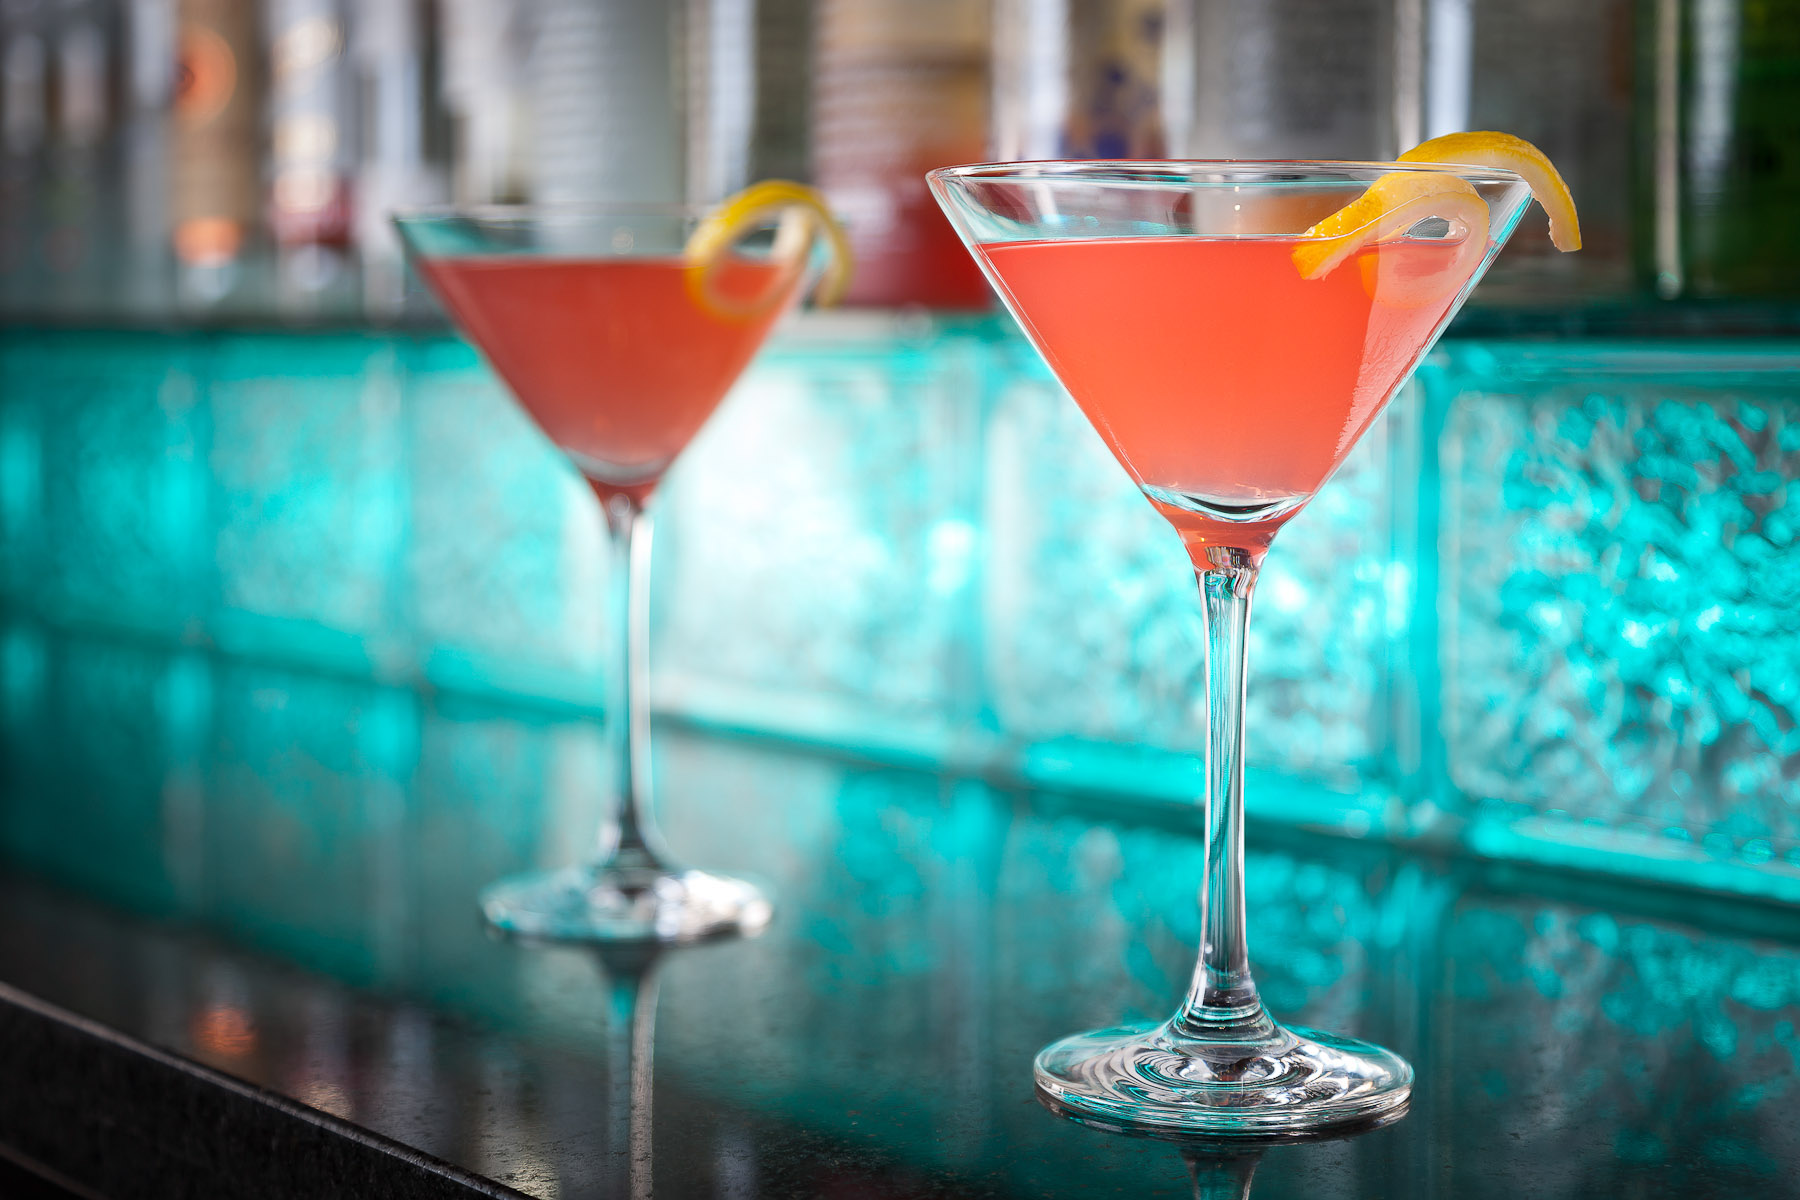 A pair of cosmopolitans sit on the neon lit bar of the Hideaway Steakhouse bar in Westminster, CO